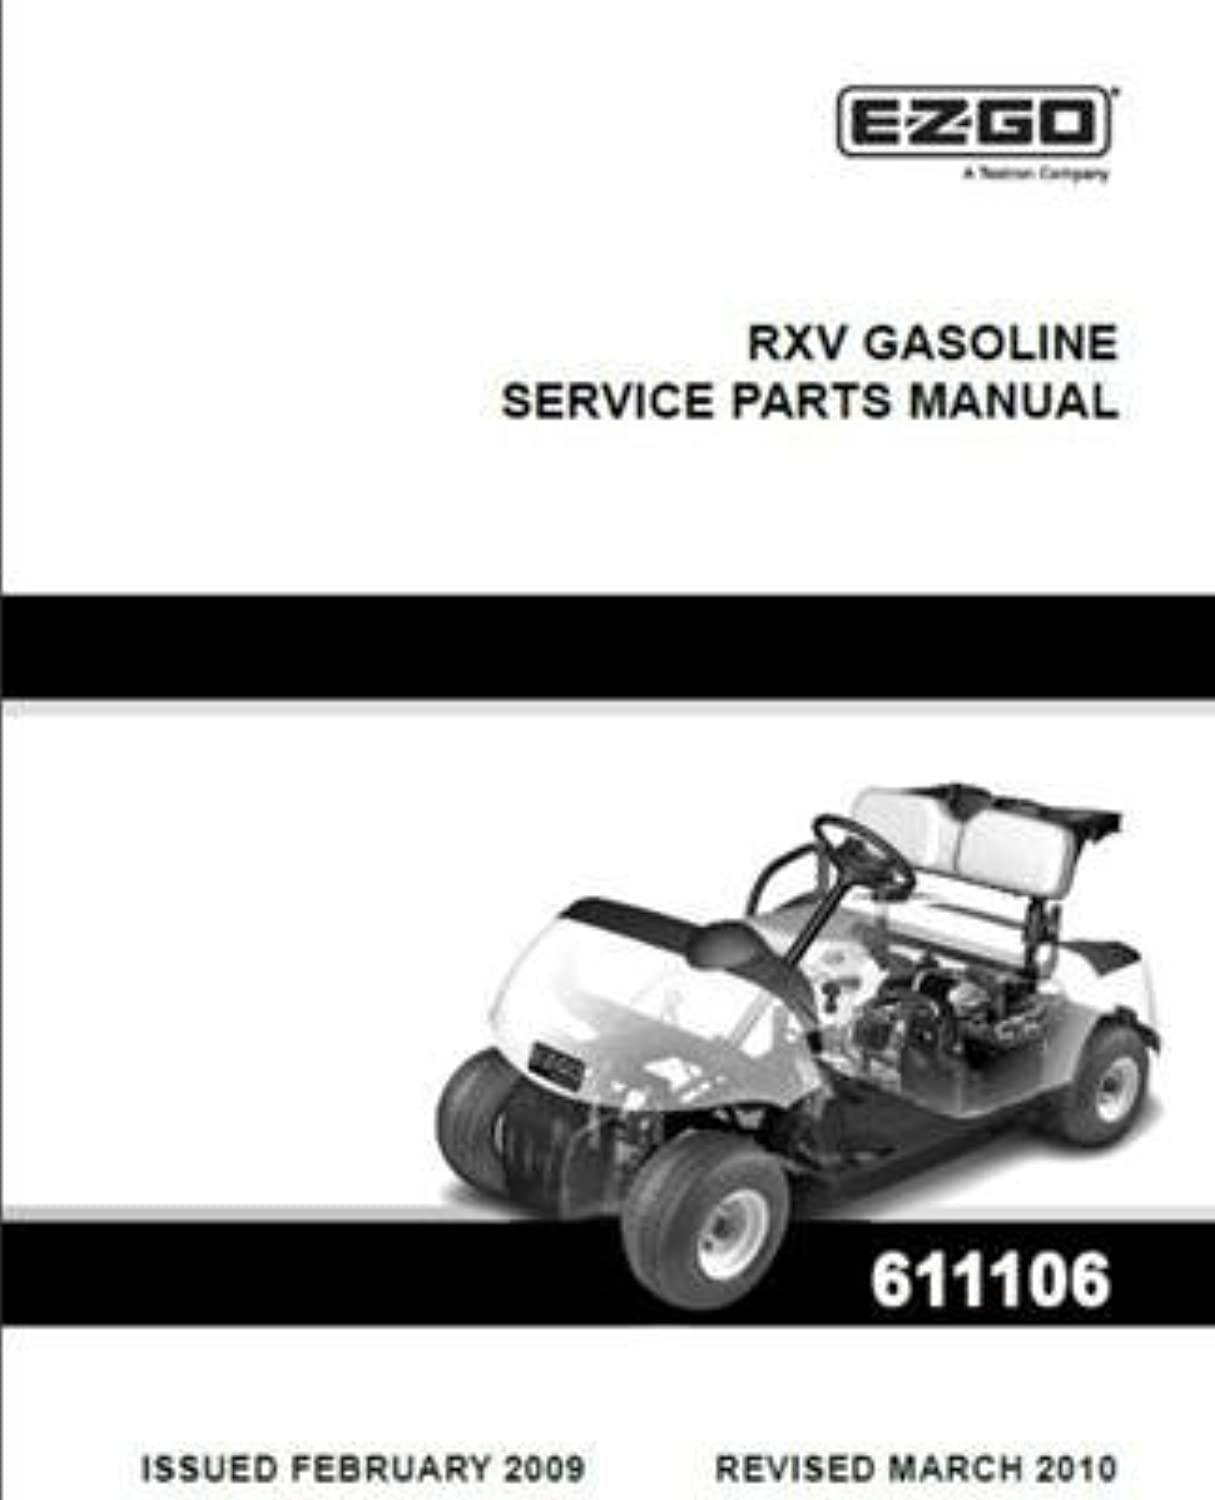 EZGO 611106 2009 Current Service Parts Manual for EZGO Gasoline RXV